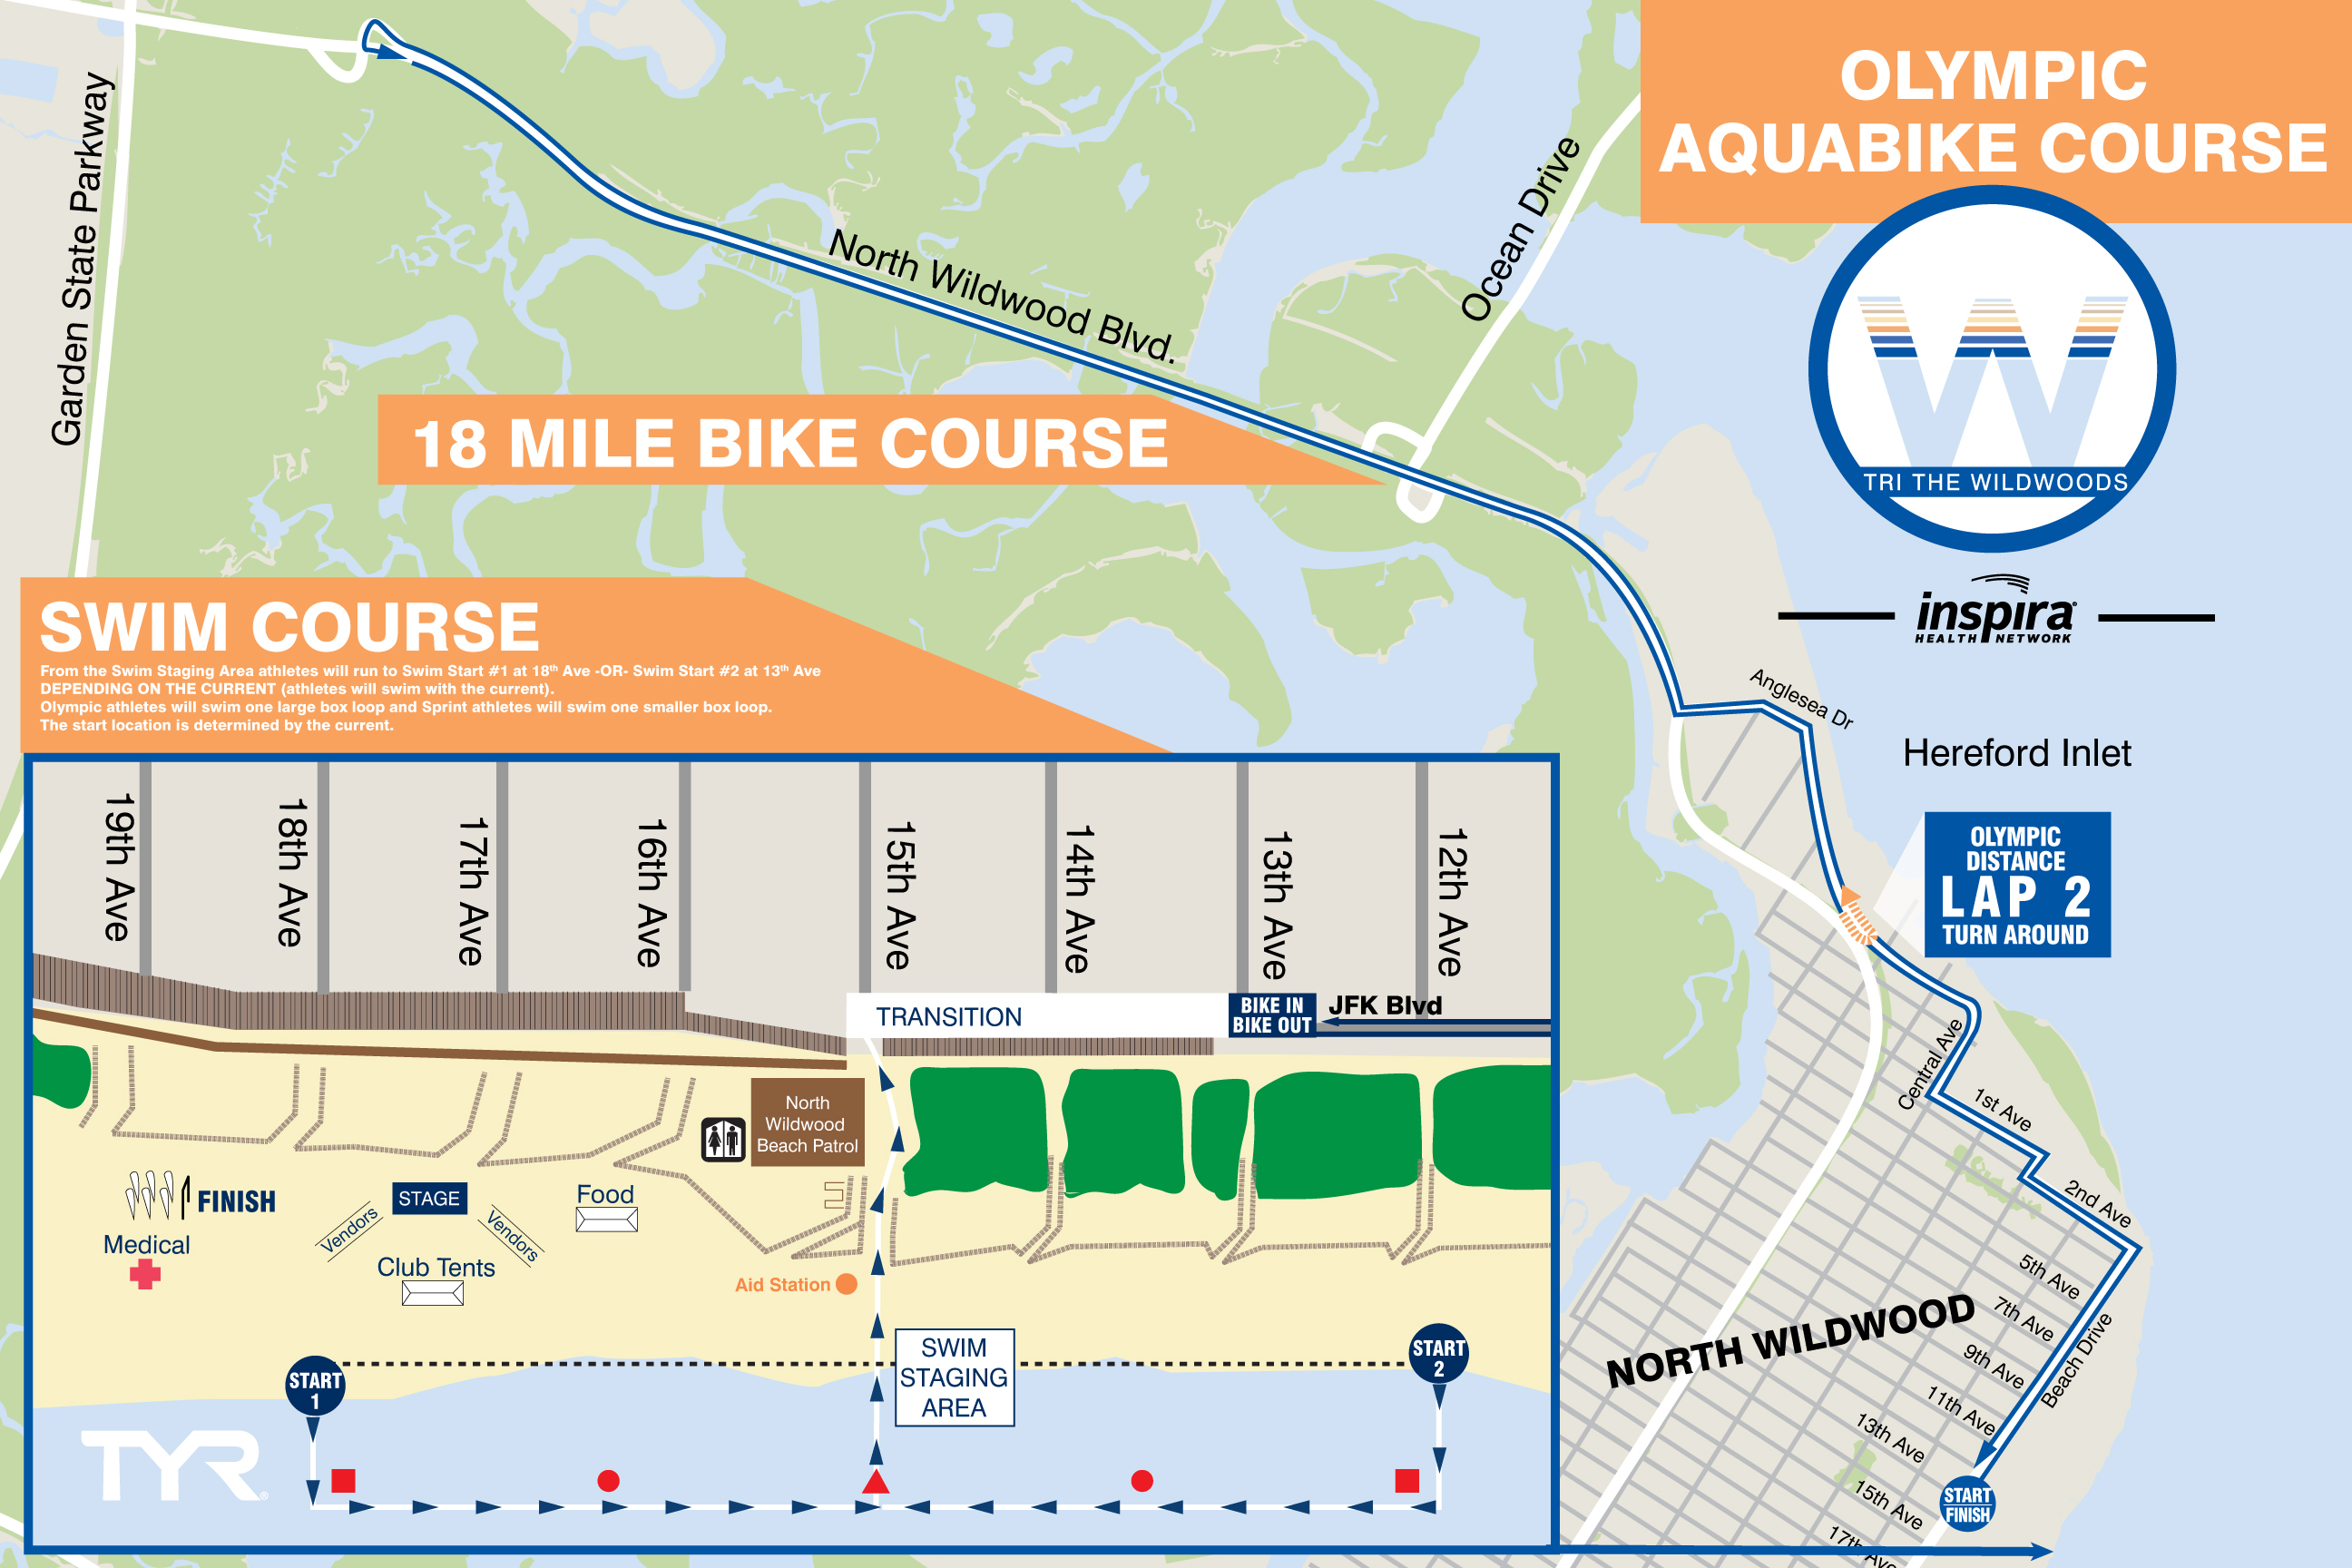 Aquabike Olympic Course